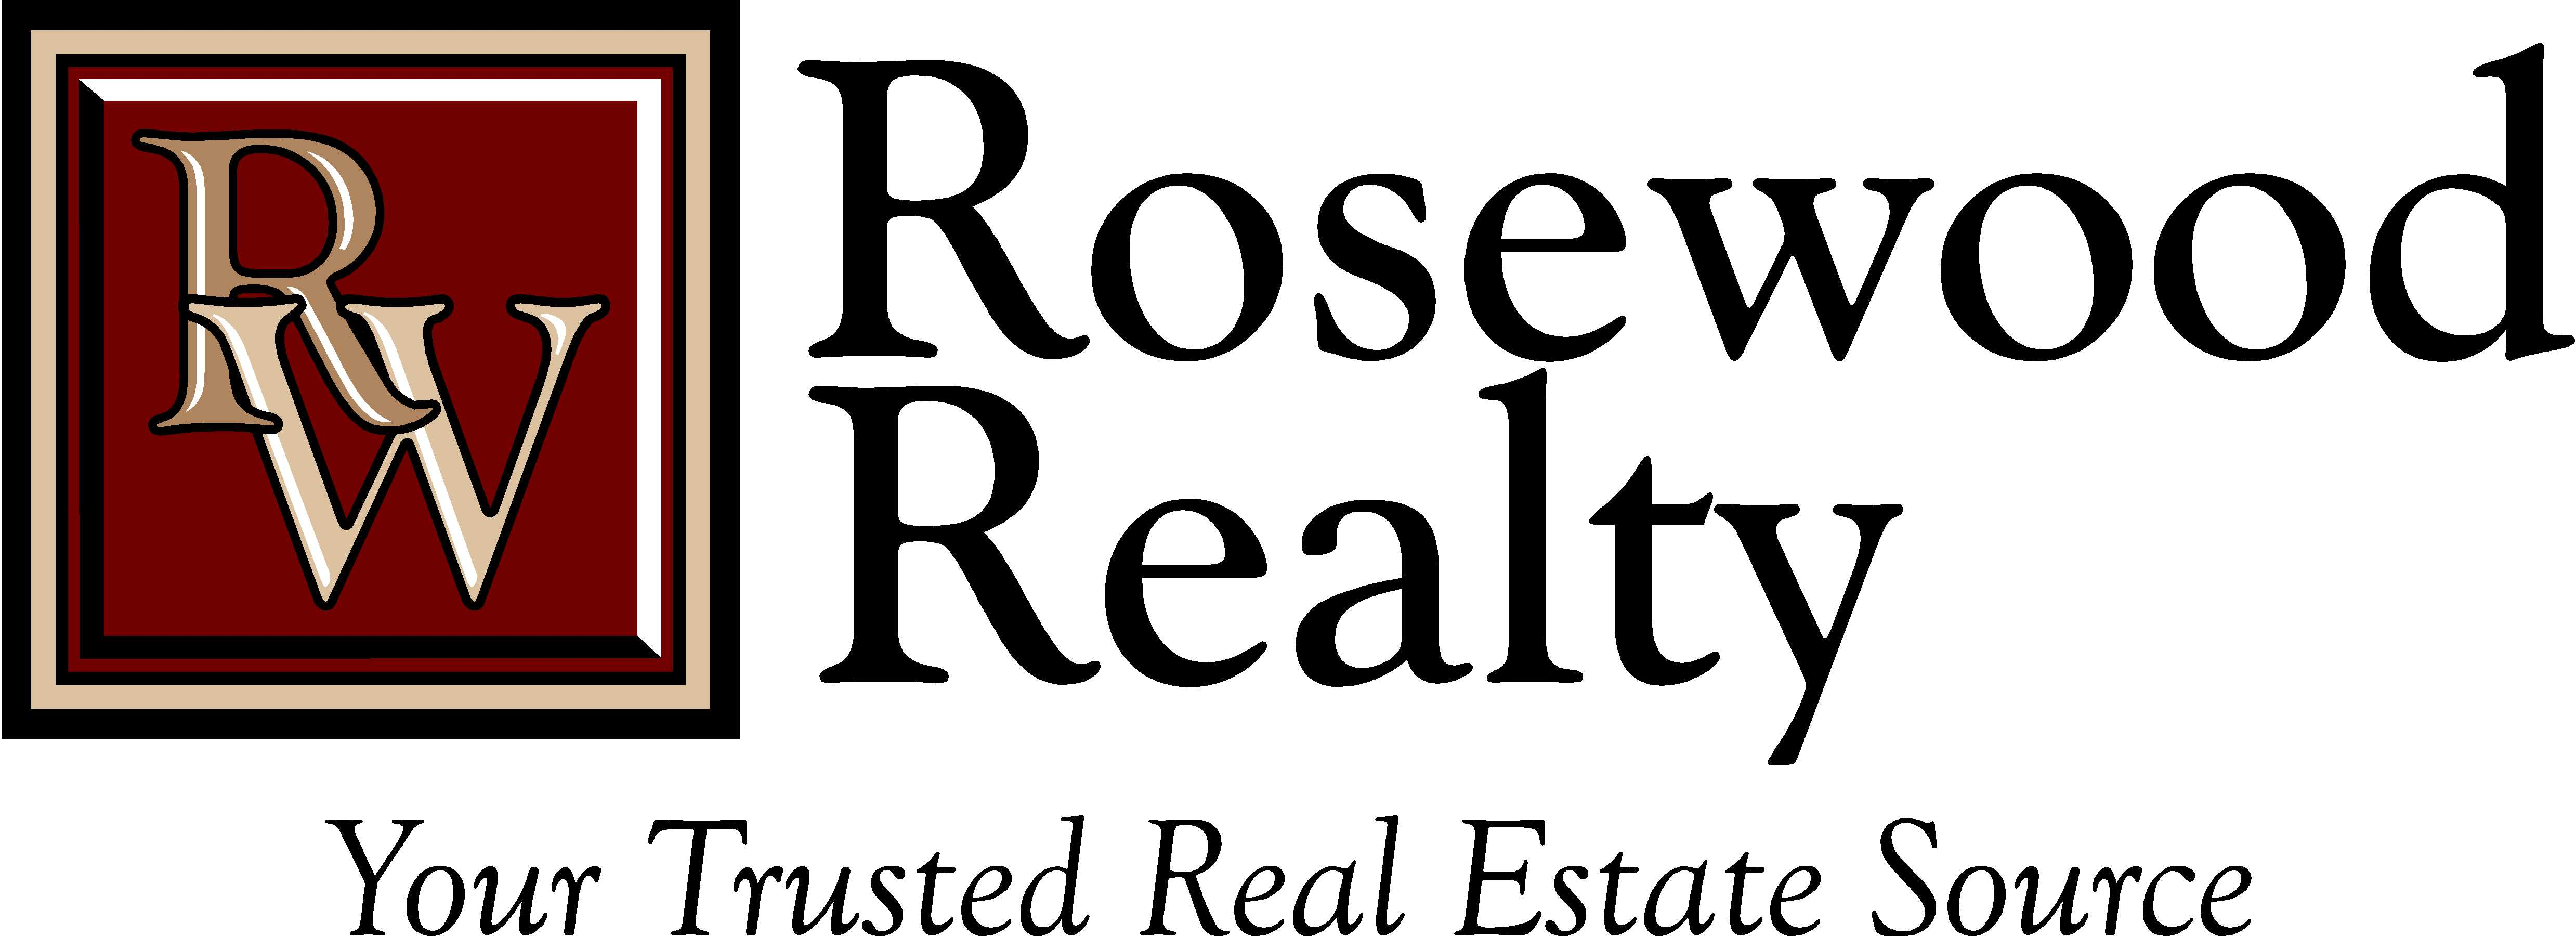 Rosewood Realty